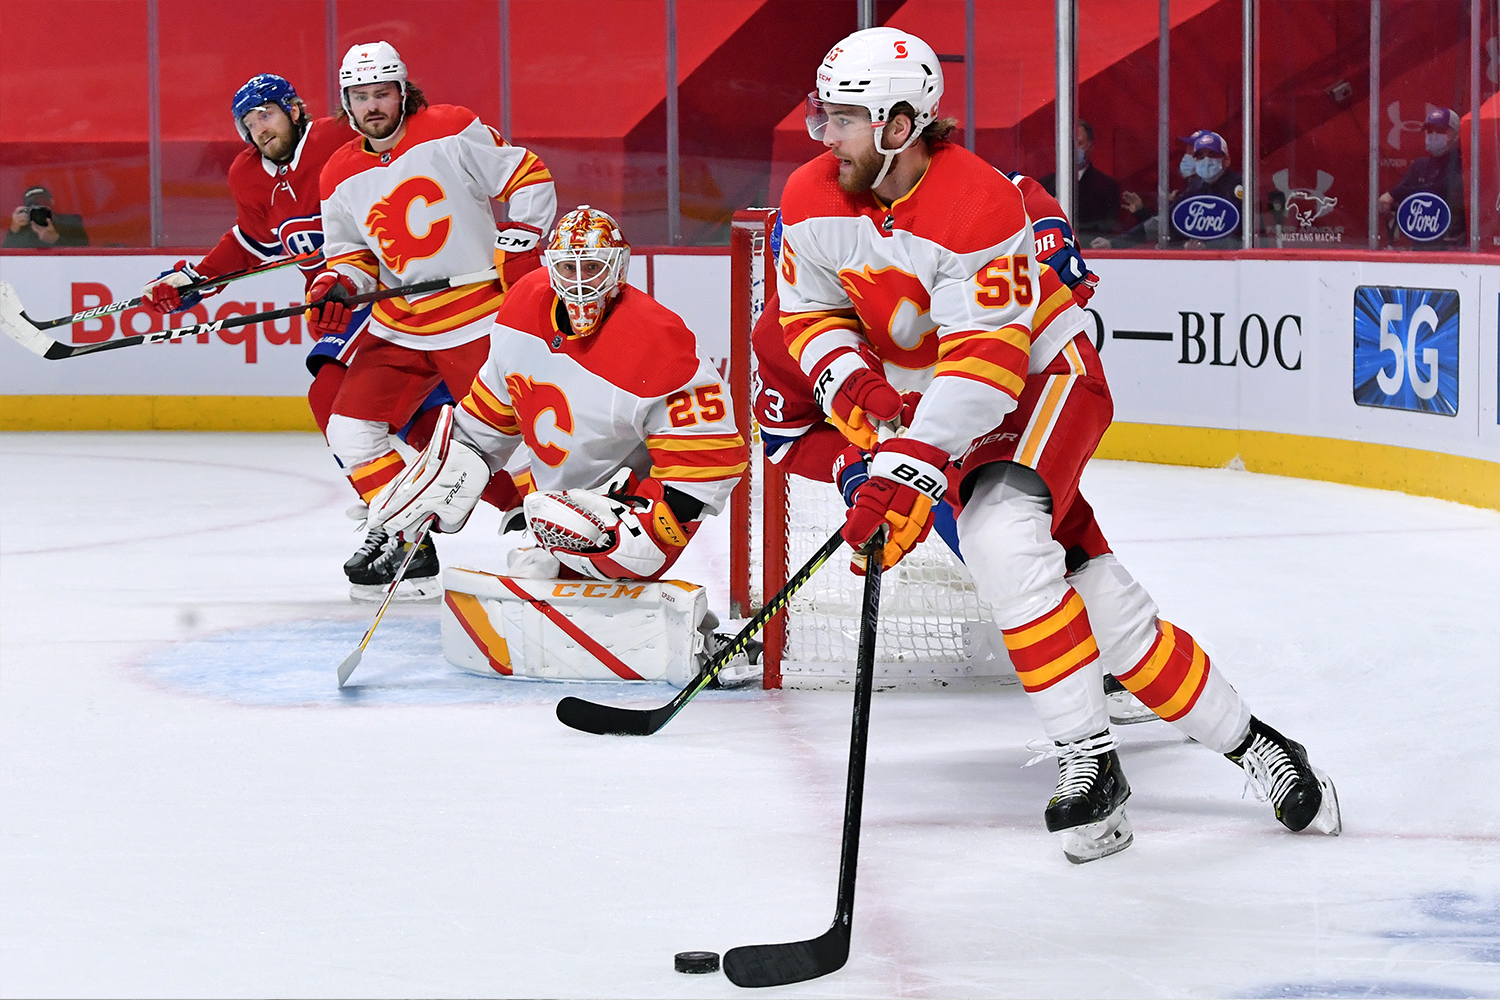 Noah Hanifin #55 of the Calgary Flames looks to pass the puck against against the Montreal Canadiens in the NHL game at the Bell Centre on April 16, 2021